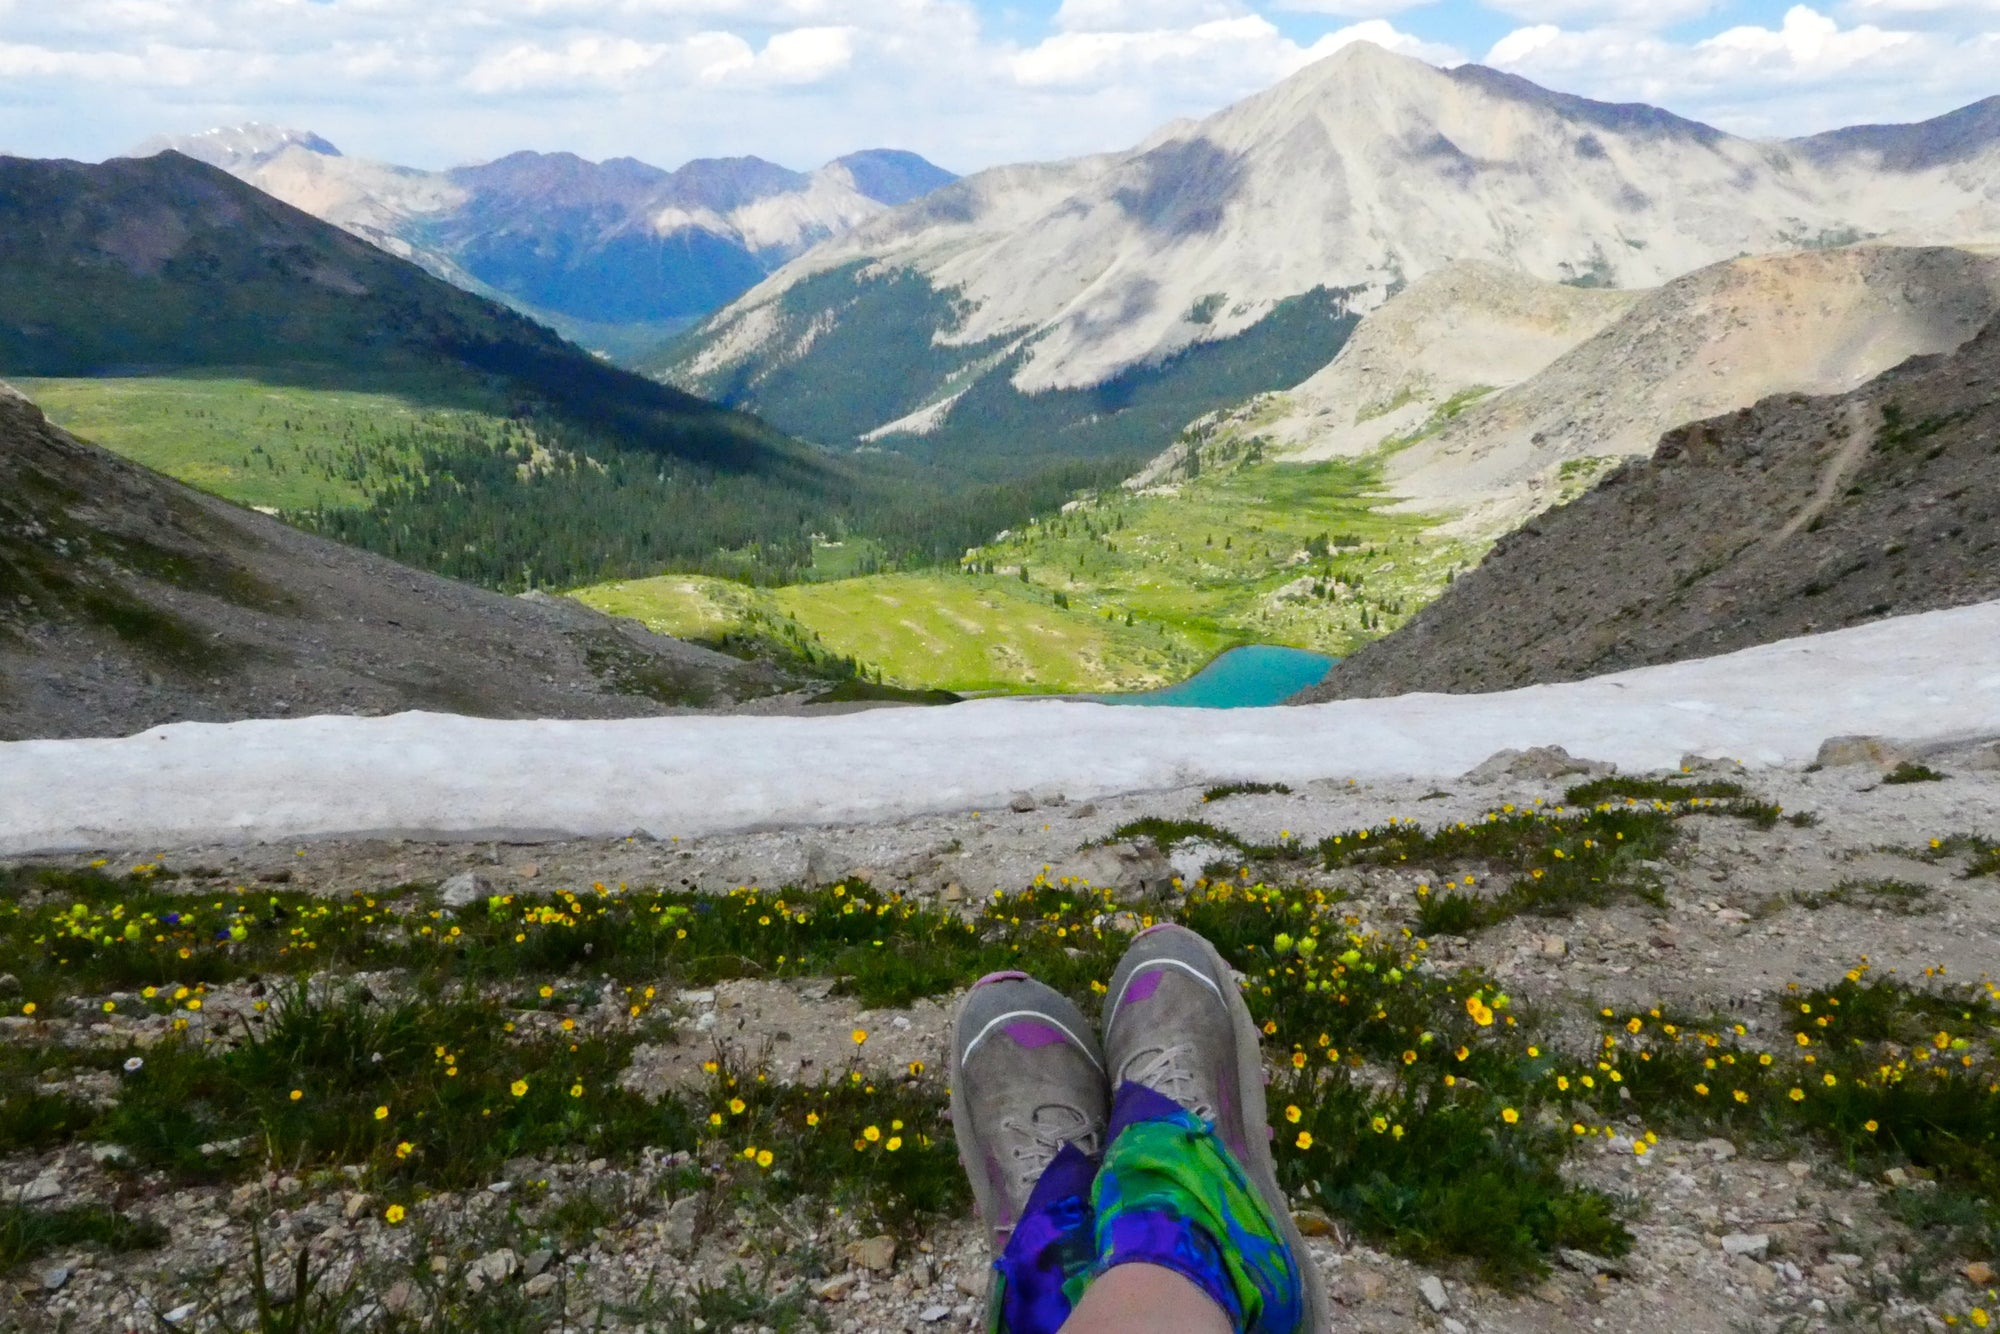 Person sitting on a high mountain top with first person perspective view, legs in focus